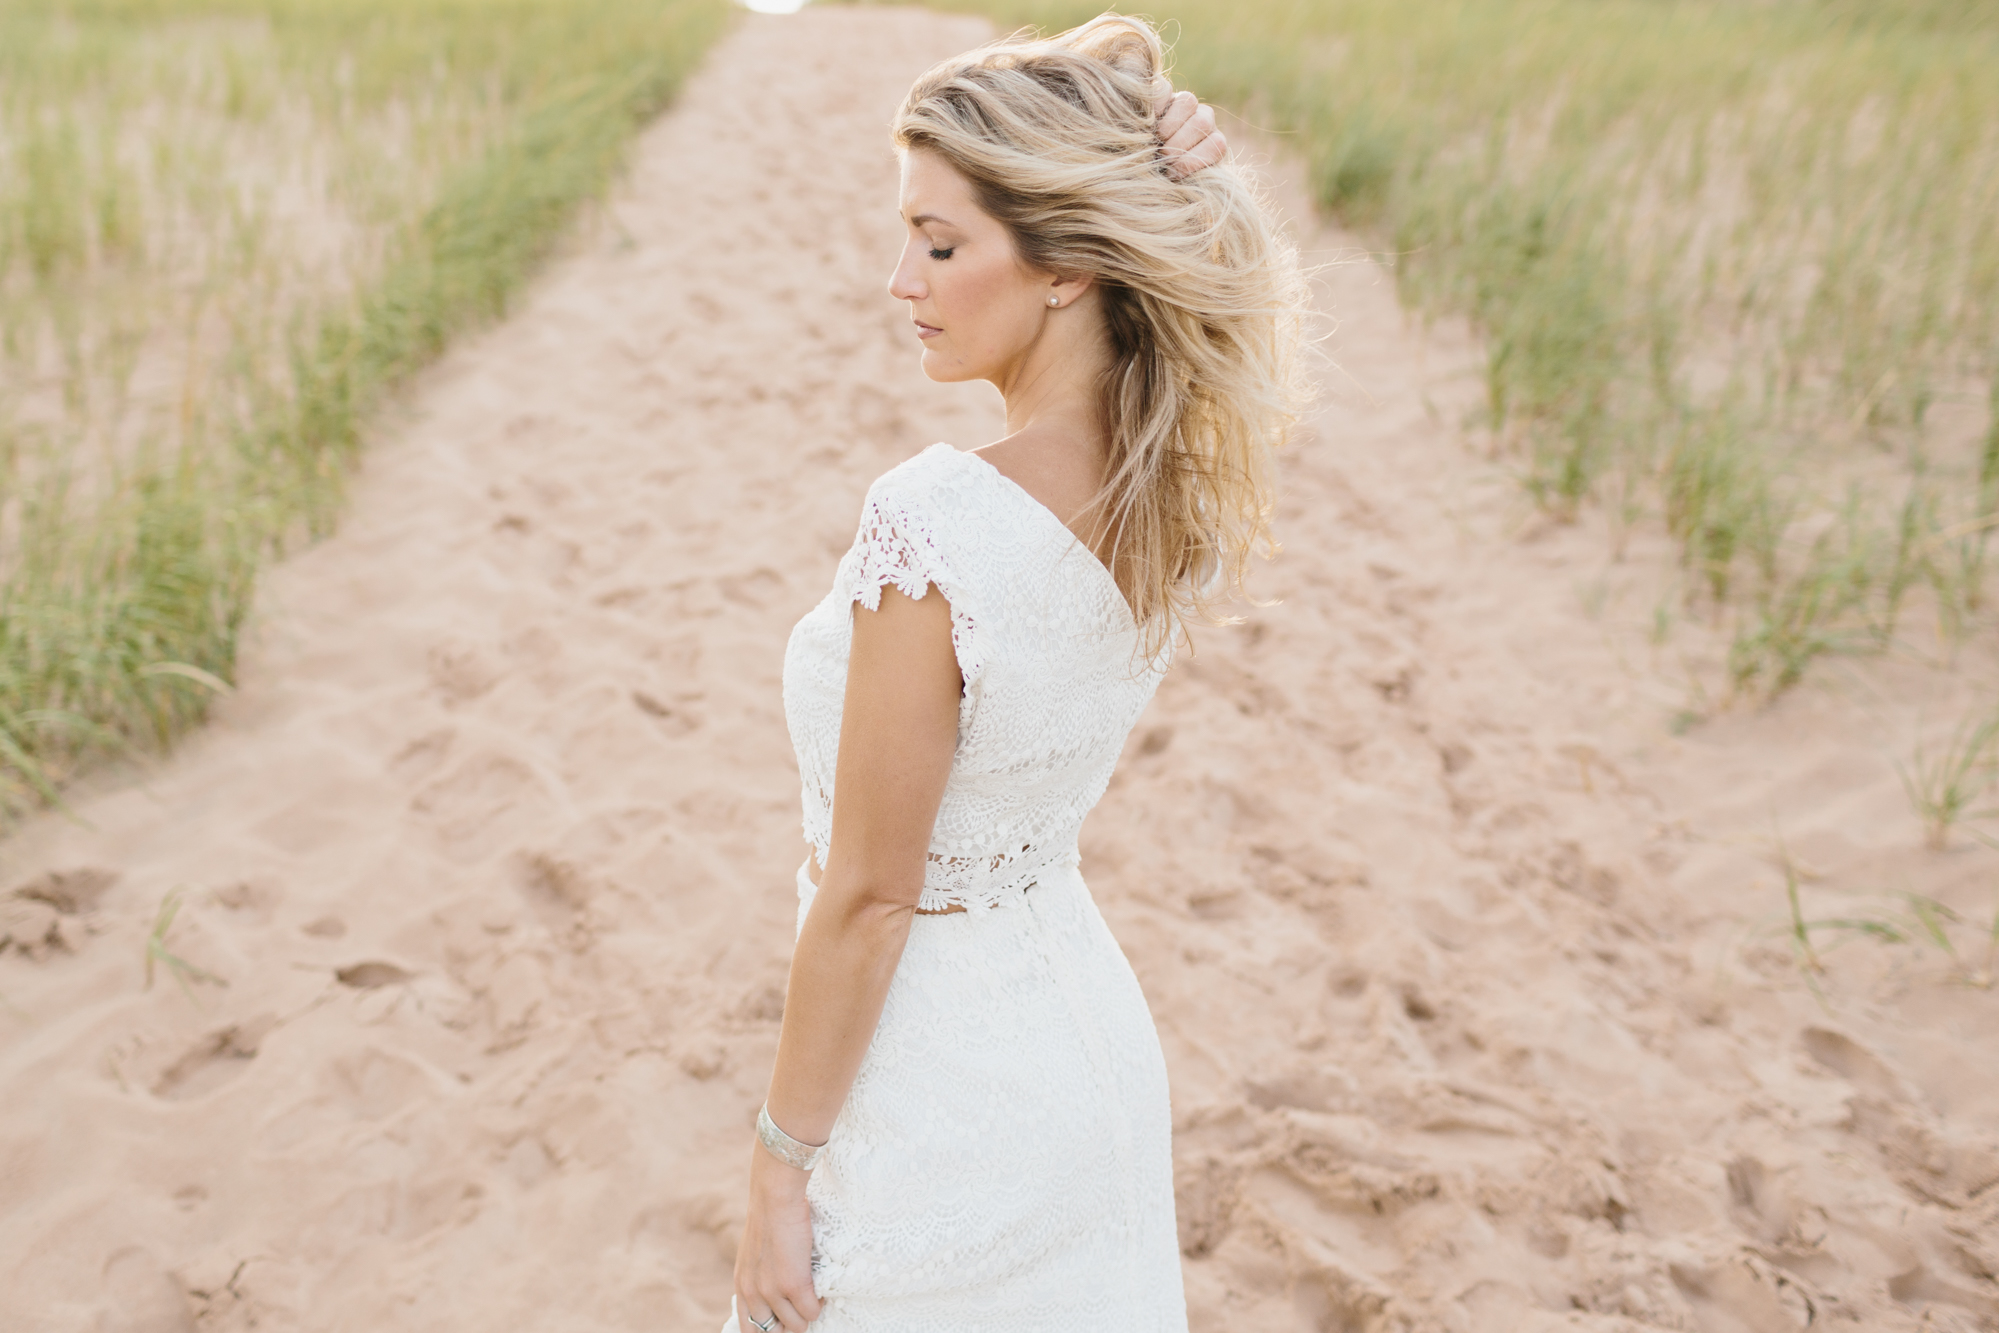 Sleeping Bear Dunes Bridal Portraits Wedding Photographer Mae Stier-038.jpg